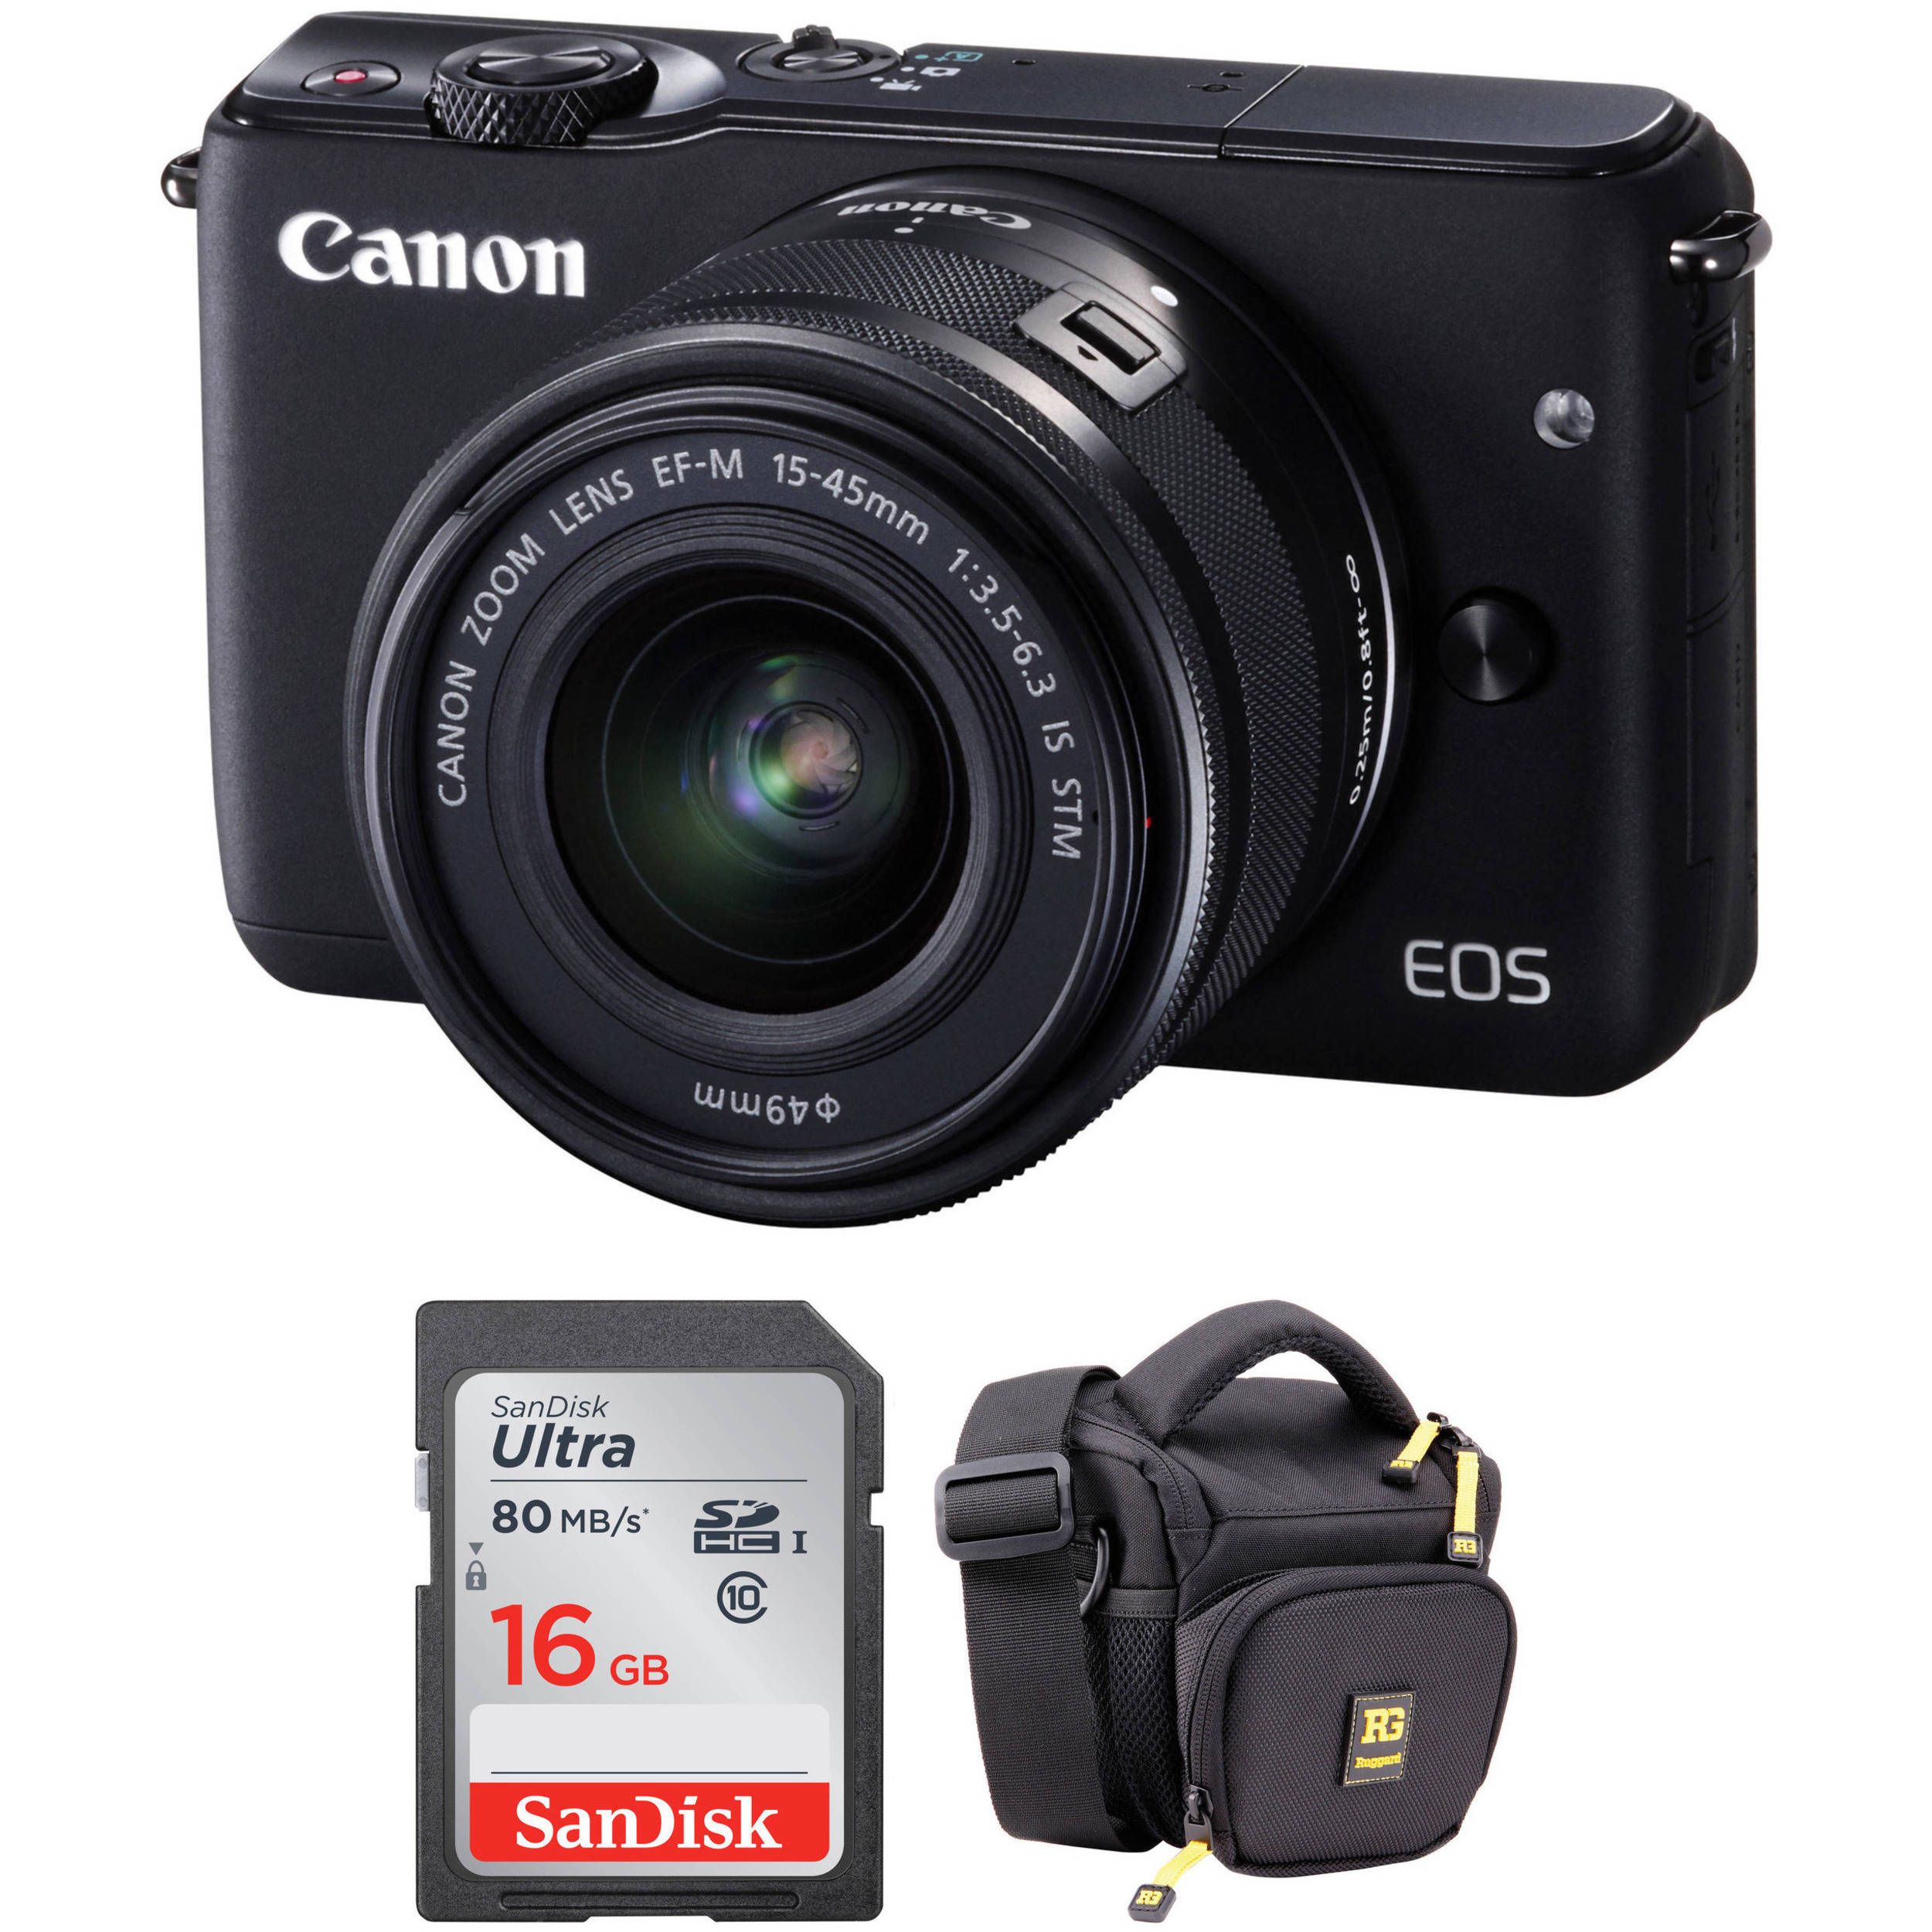 canon eos m10 mirrorless digital camera with 15 45mm lens. Black Bedroom Furniture Sets. Home Design Ideas